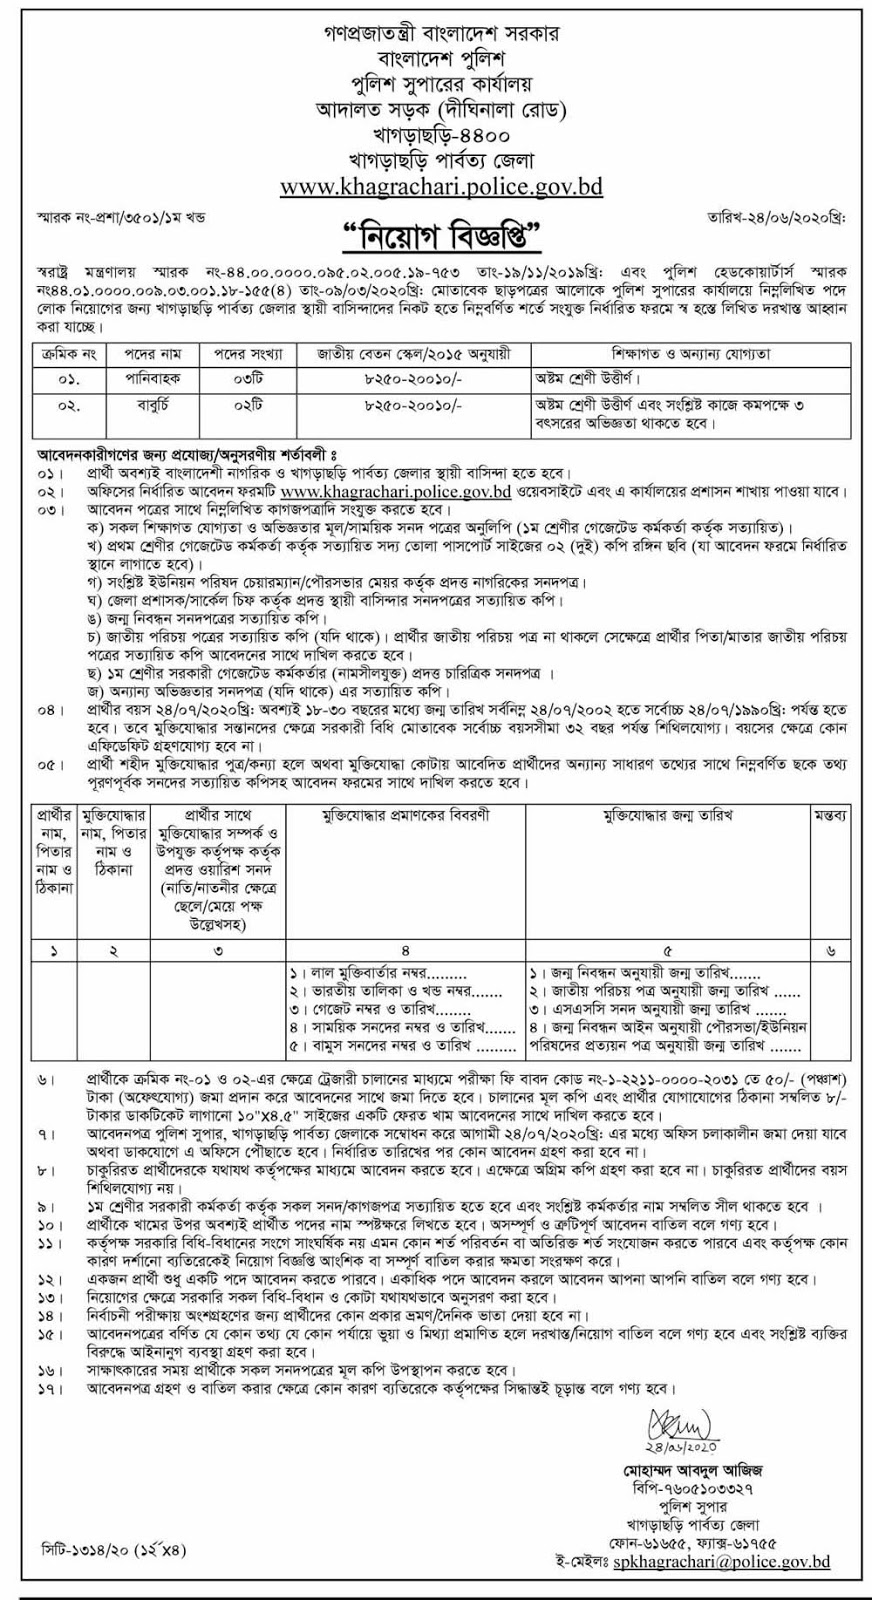 Khagrachari Police Super (SP) Office Job Circular 2020